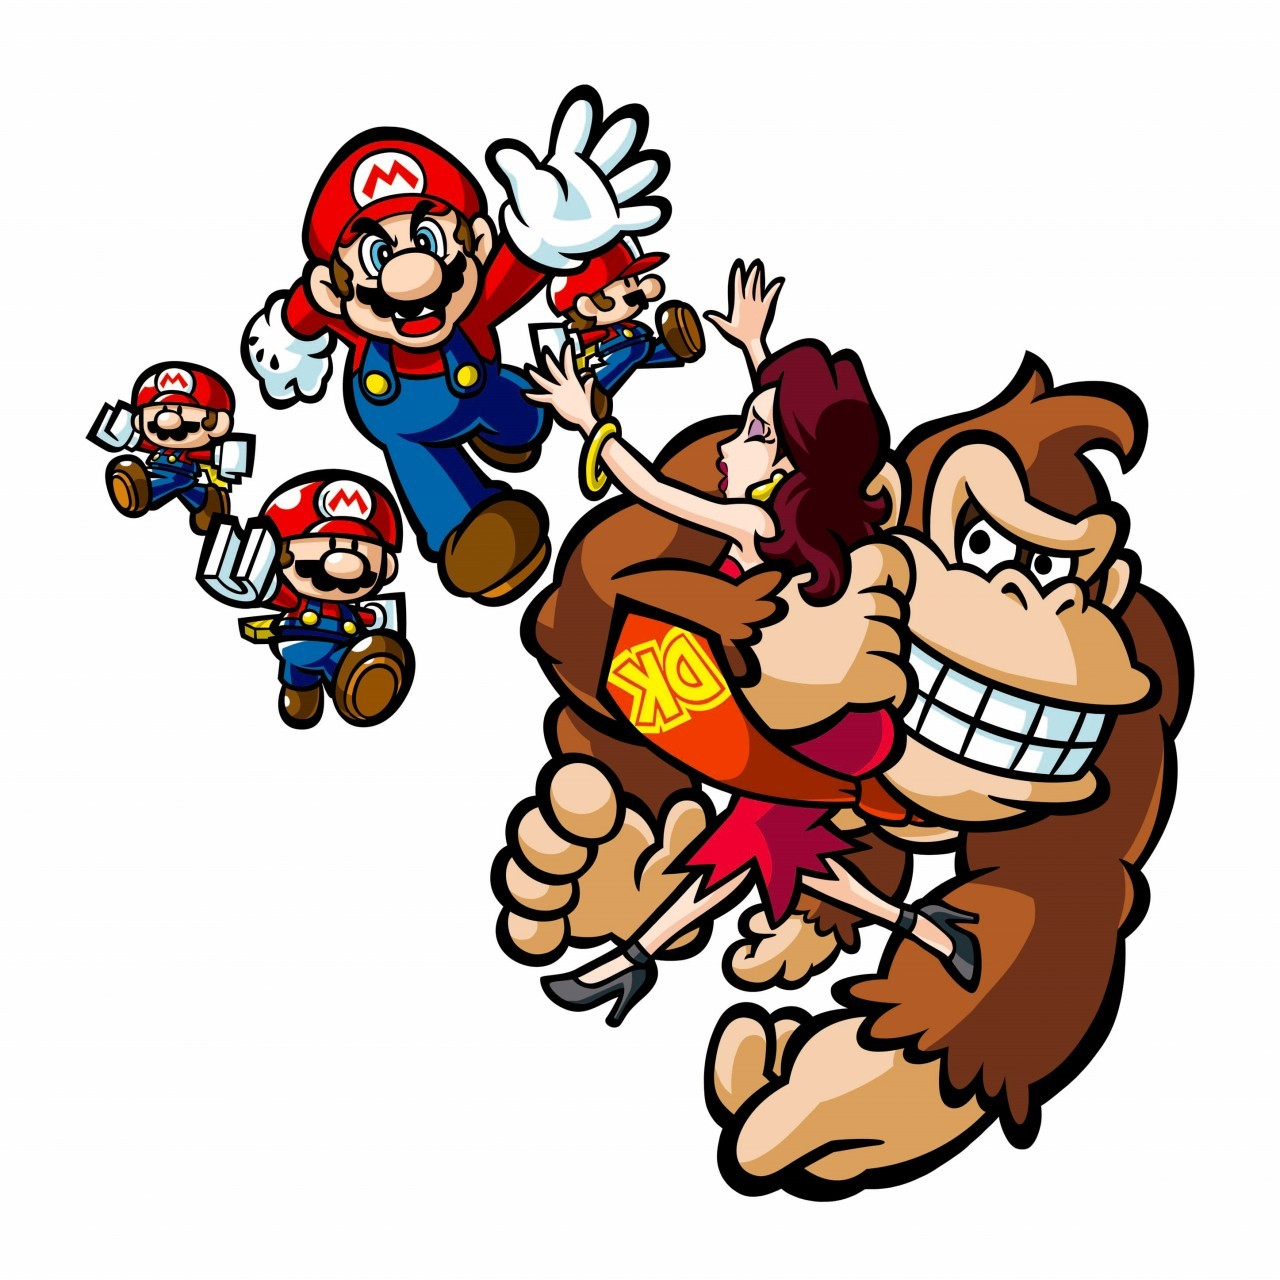 Donkey kong colouring pages to print -  Donkey Kong Mario Kart Colouring Pages Page 2 Coloring Sheep Printable